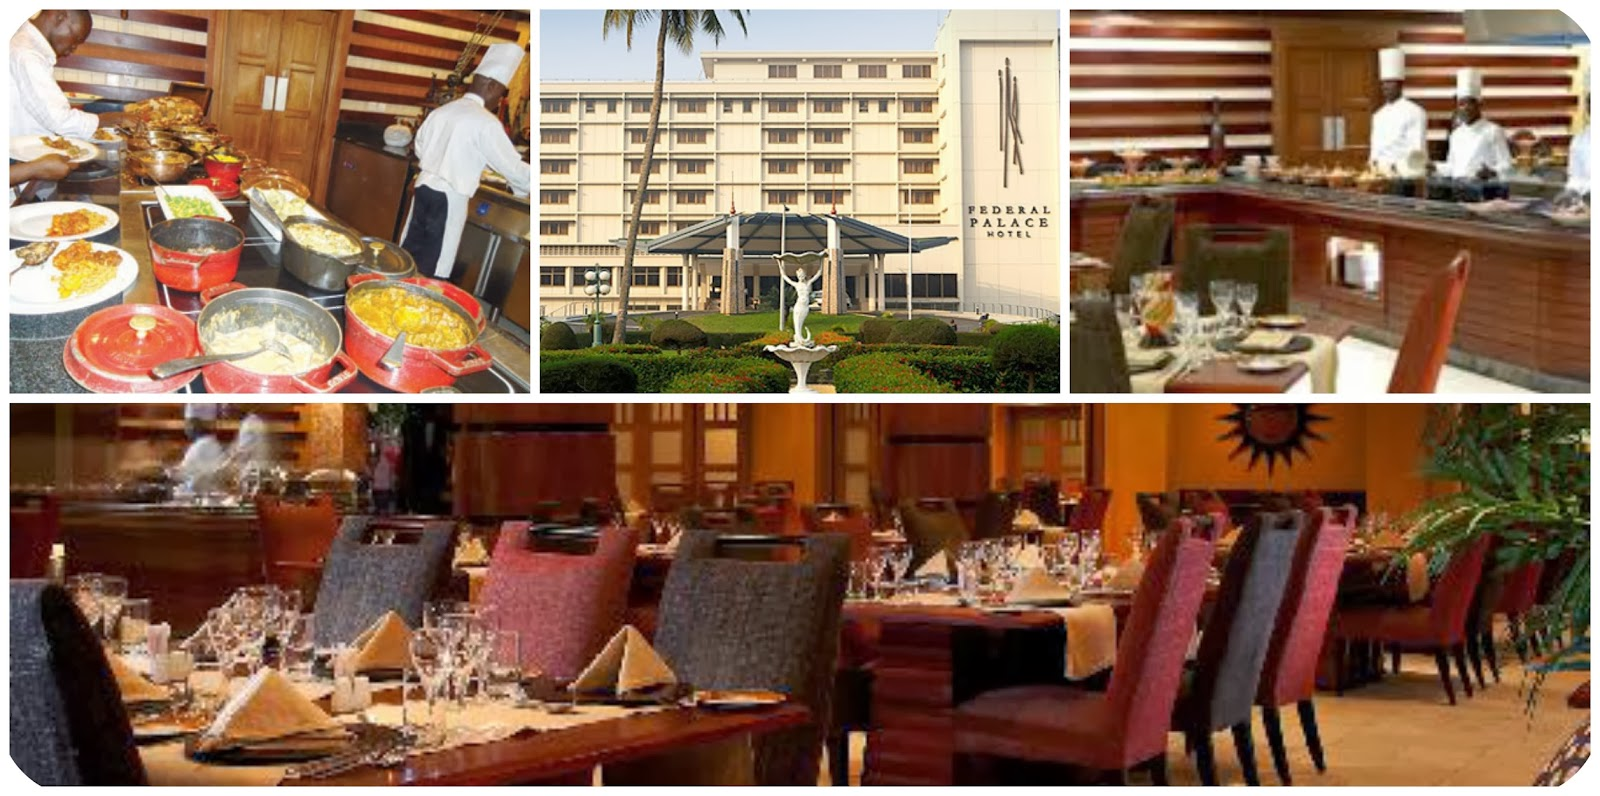 Hotel Federale Review Federal Palace Hotel Sunday Buffet Sisiyemmie Nigerian